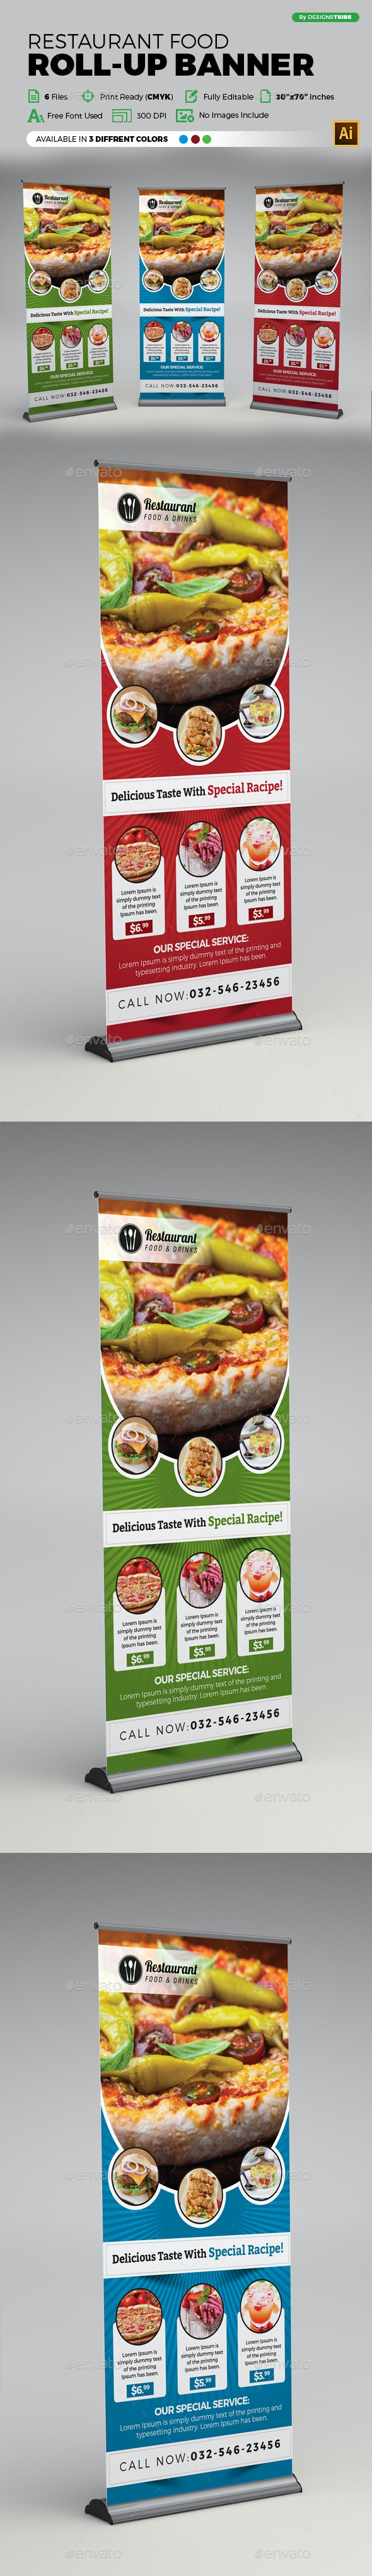 Restaurant Food Roll-up Banner - Signage Print Templates